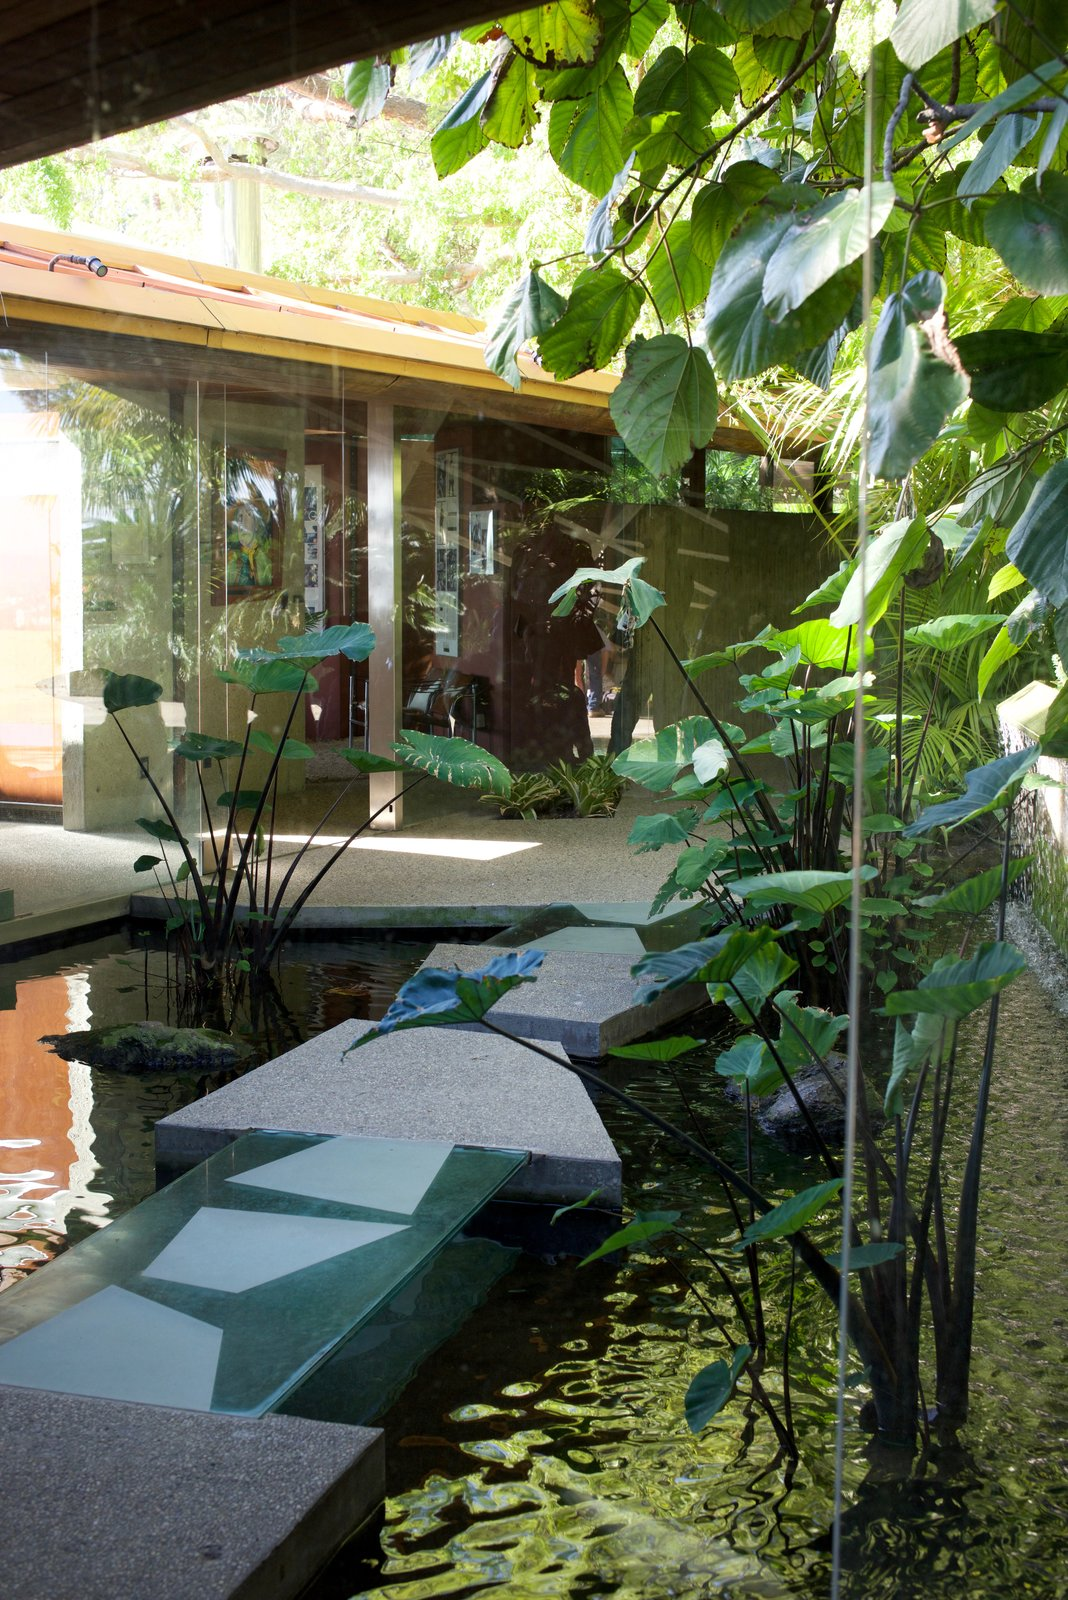 Two sections of the house are connected by a pond that holds a number of substantially sized fish.  Behind the Scenes at John Lautner's Sheats-Goldstein Residence